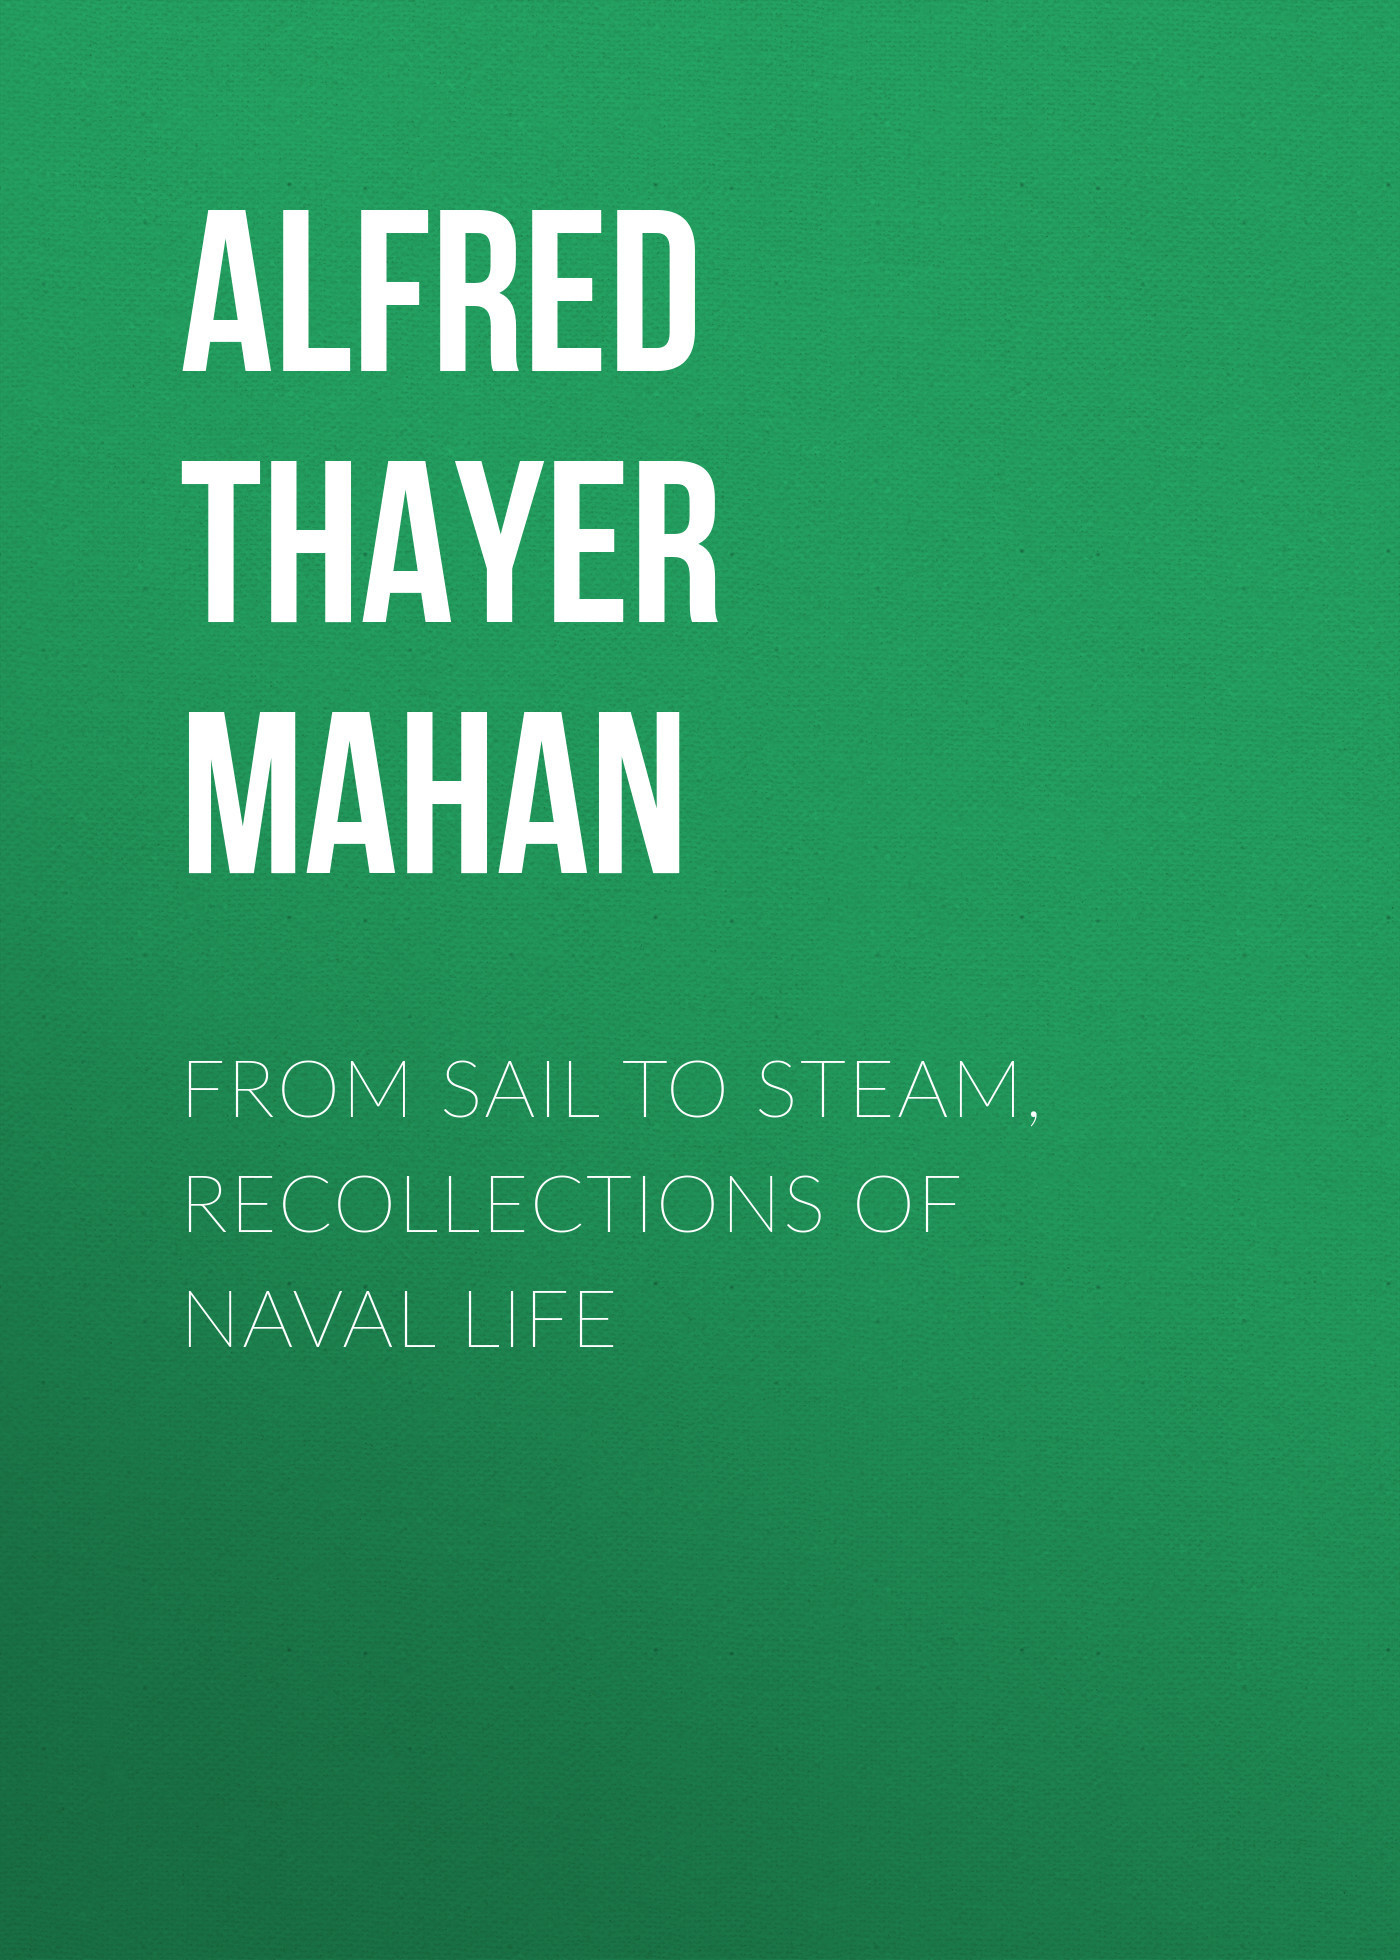 Alfred Thayer Mahan From Sail to Steam, Recollections of Naval Life